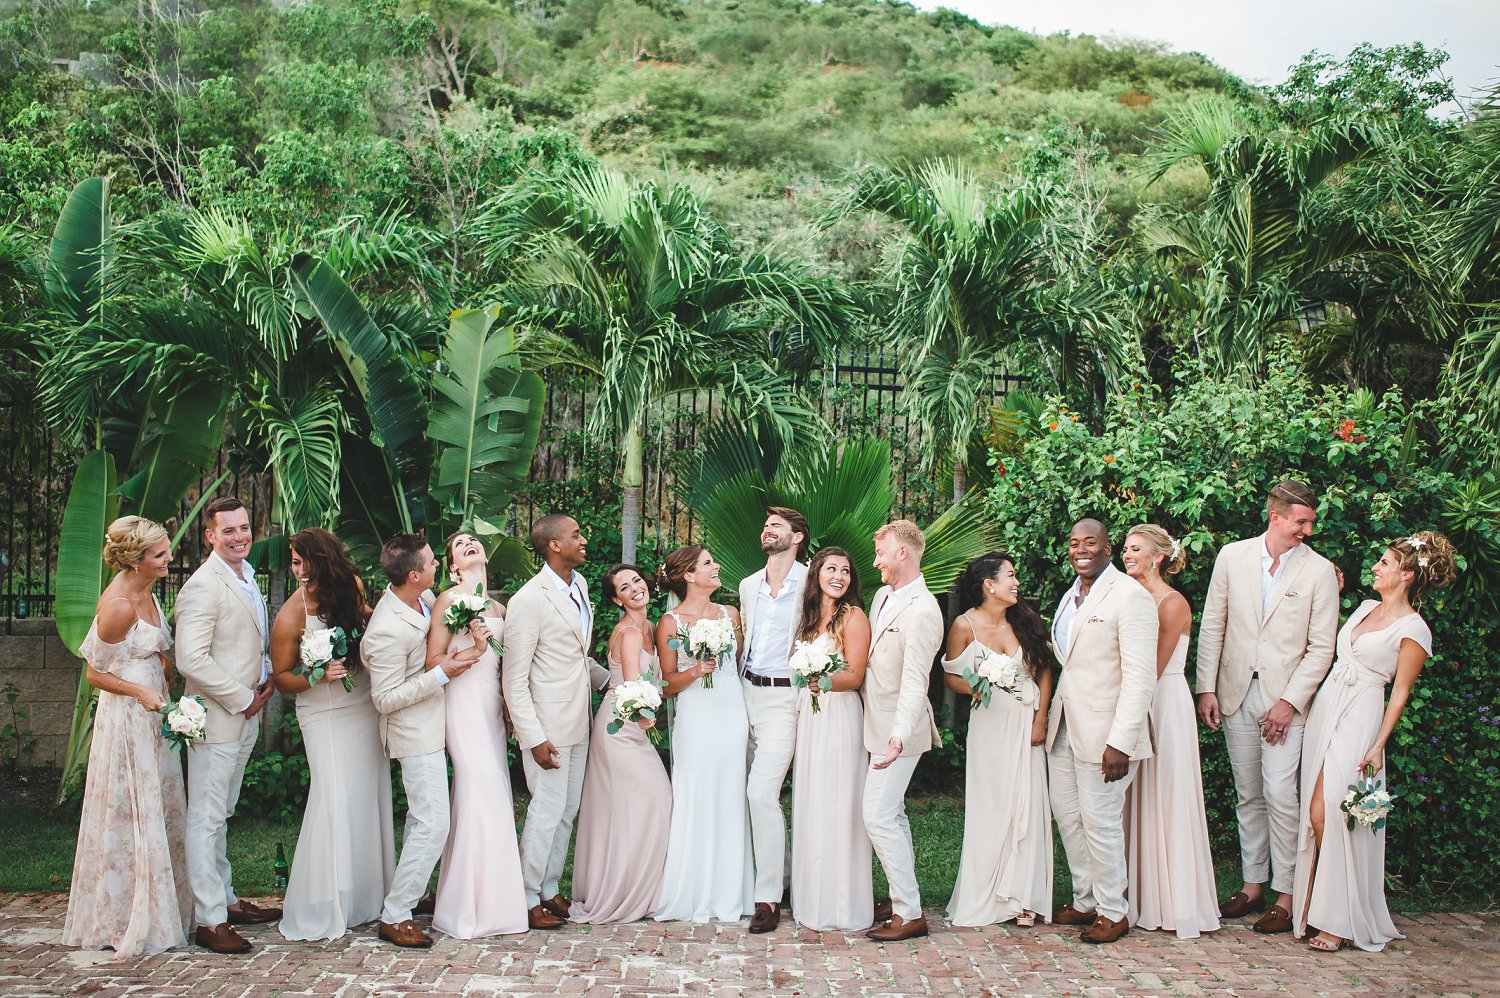 Wedding party (bride, groom, bridesmaids, and groomsmen) portrait with neutral mismatched dresses and tan/khaki suits